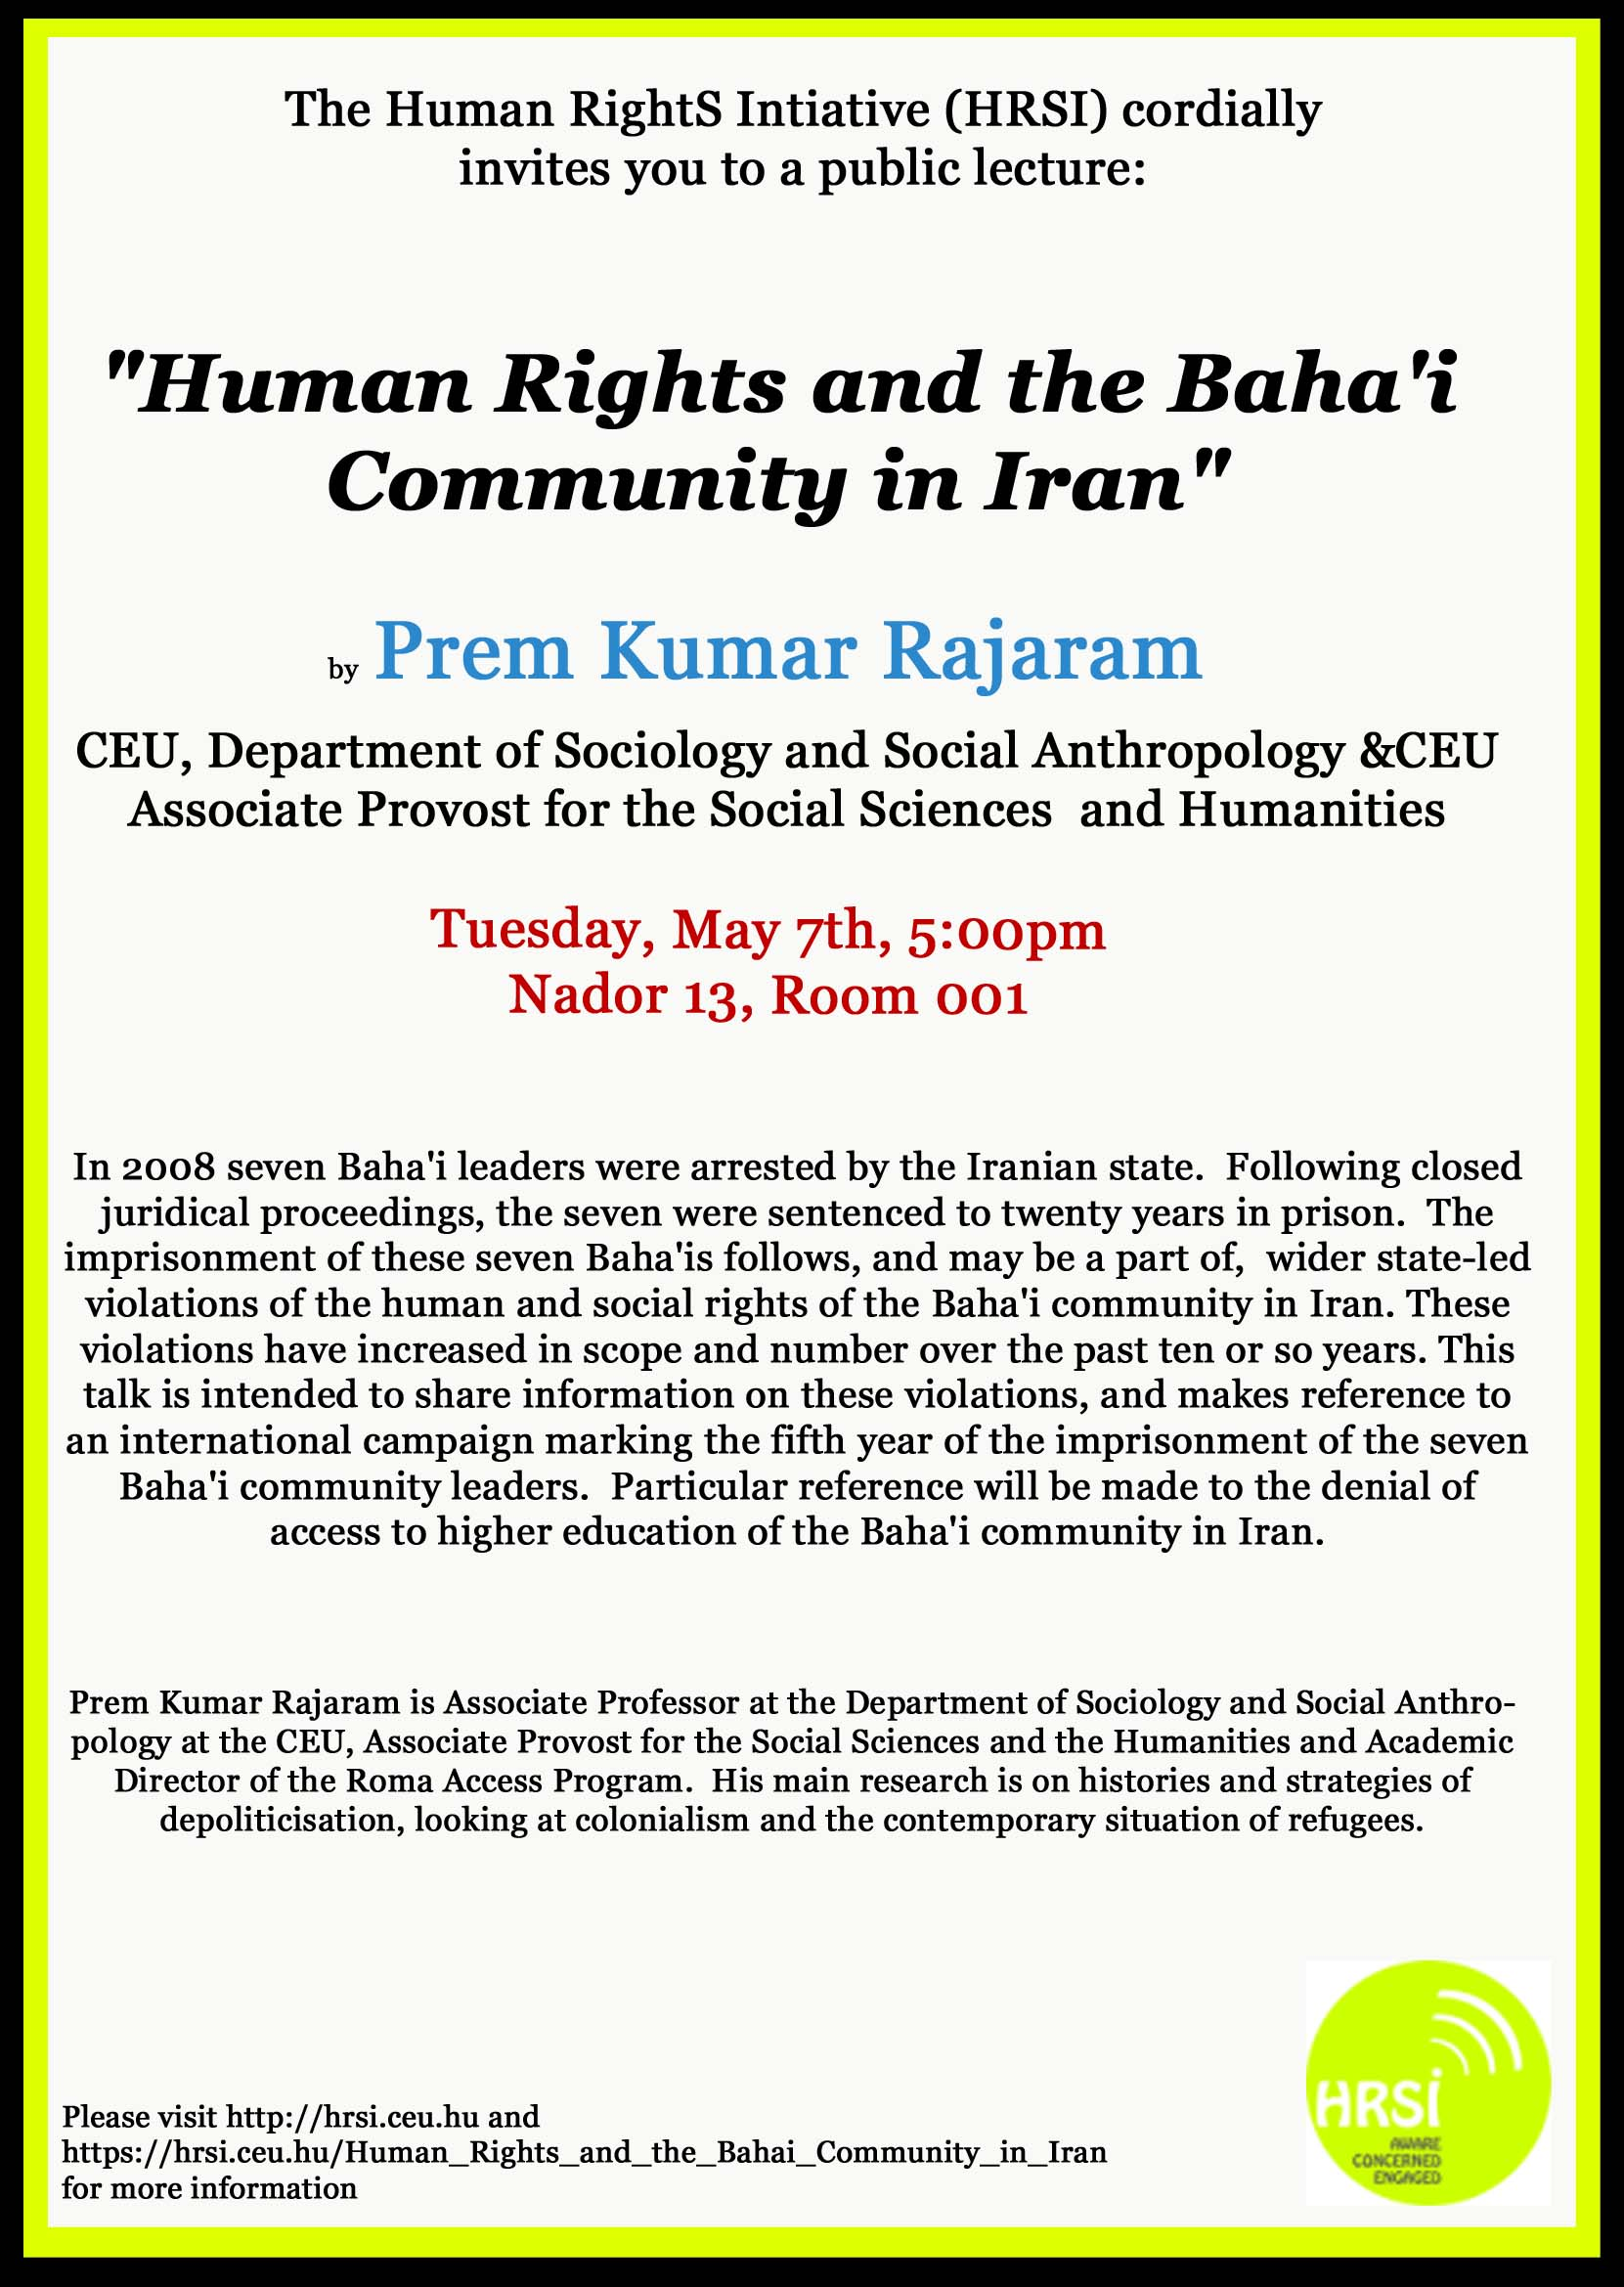 Lecture on Human Rights in Iran at CEU © Human RightS Initiative (HRSI)